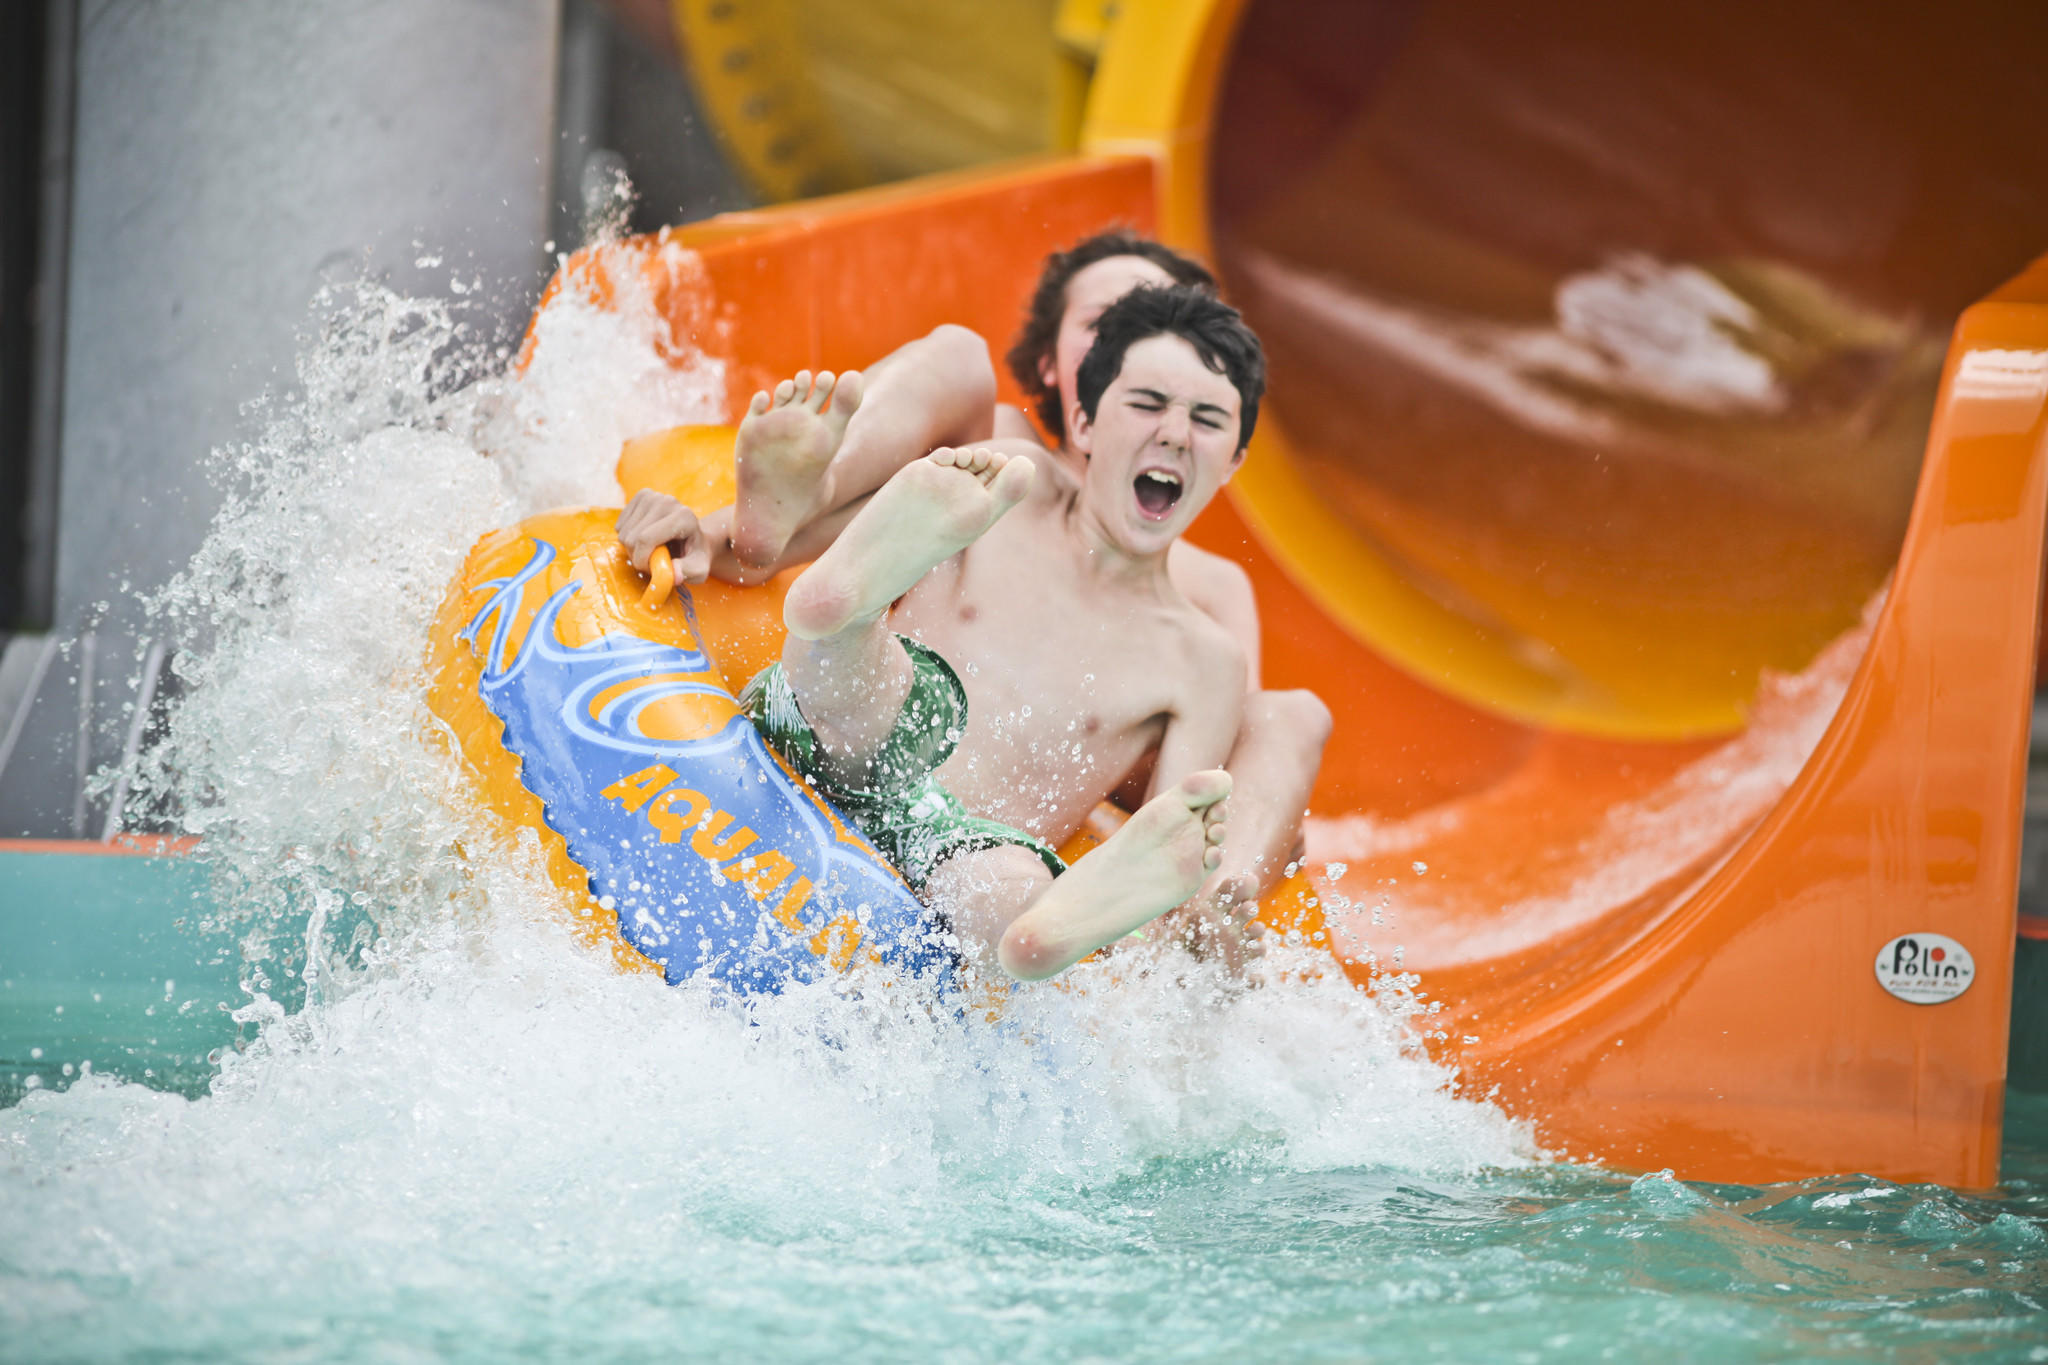 The new Cowabunga Bay will open May 24 in Henderson, Nev.